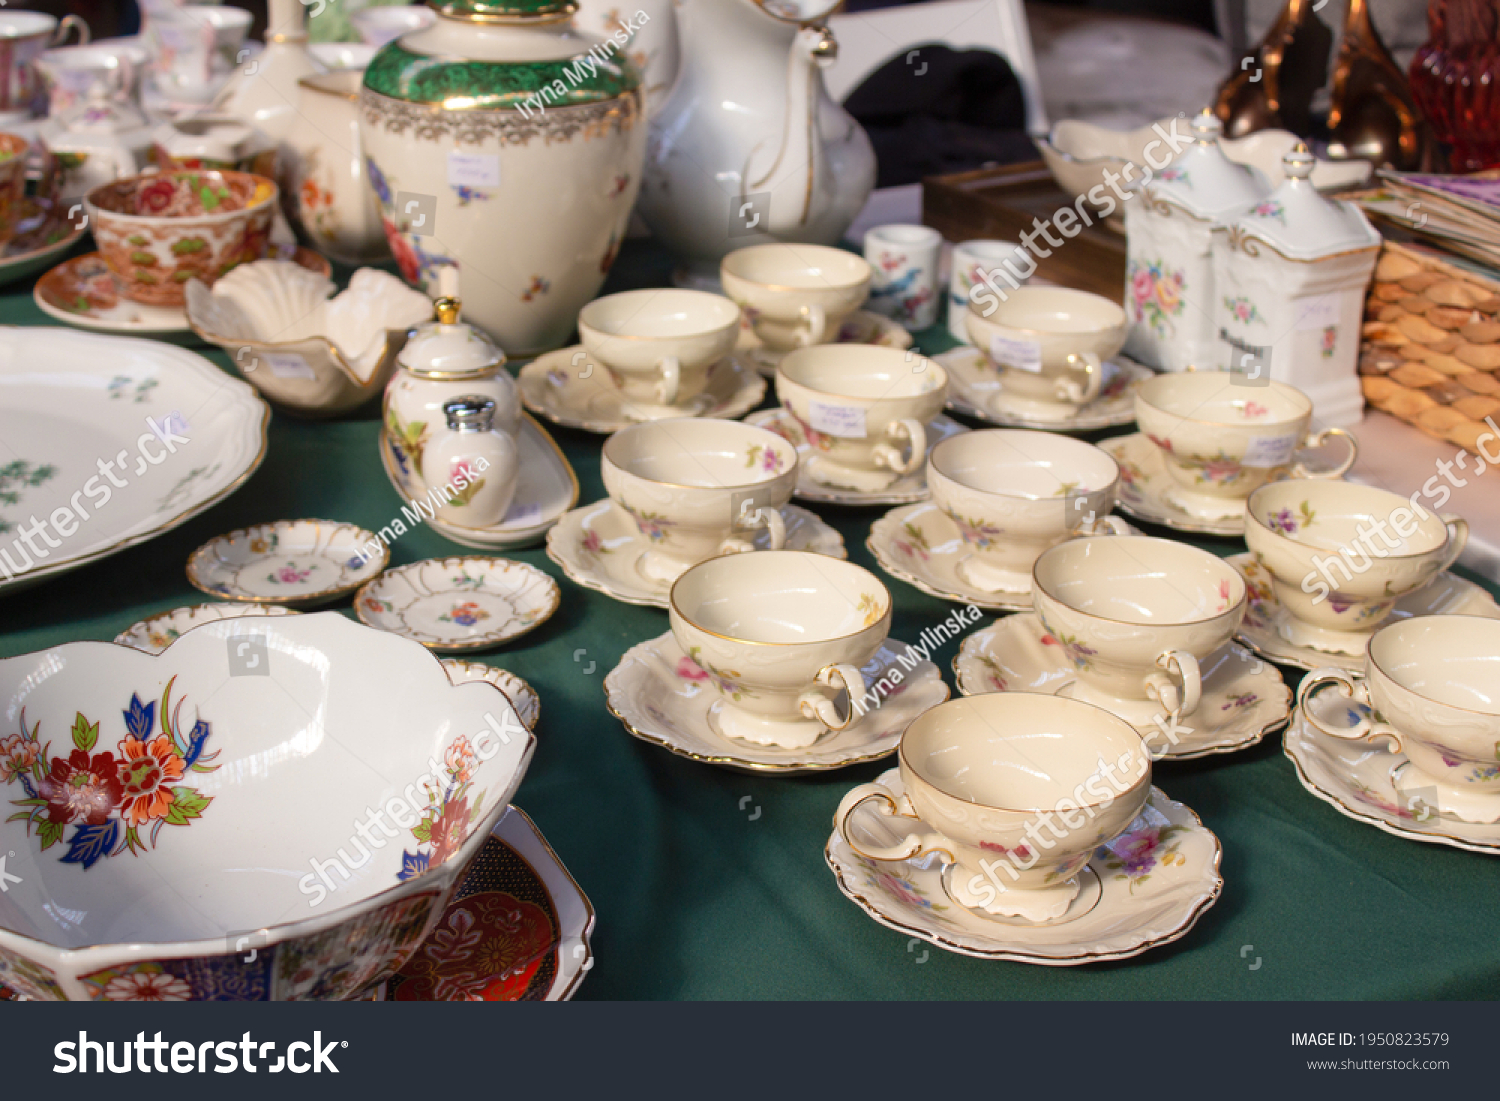 Antiques on flea market or festival - vintage porcelain tea cups, tableware and other vintage things. Collectibles memorabilia and garage sale concept. Selective focus #1950823579